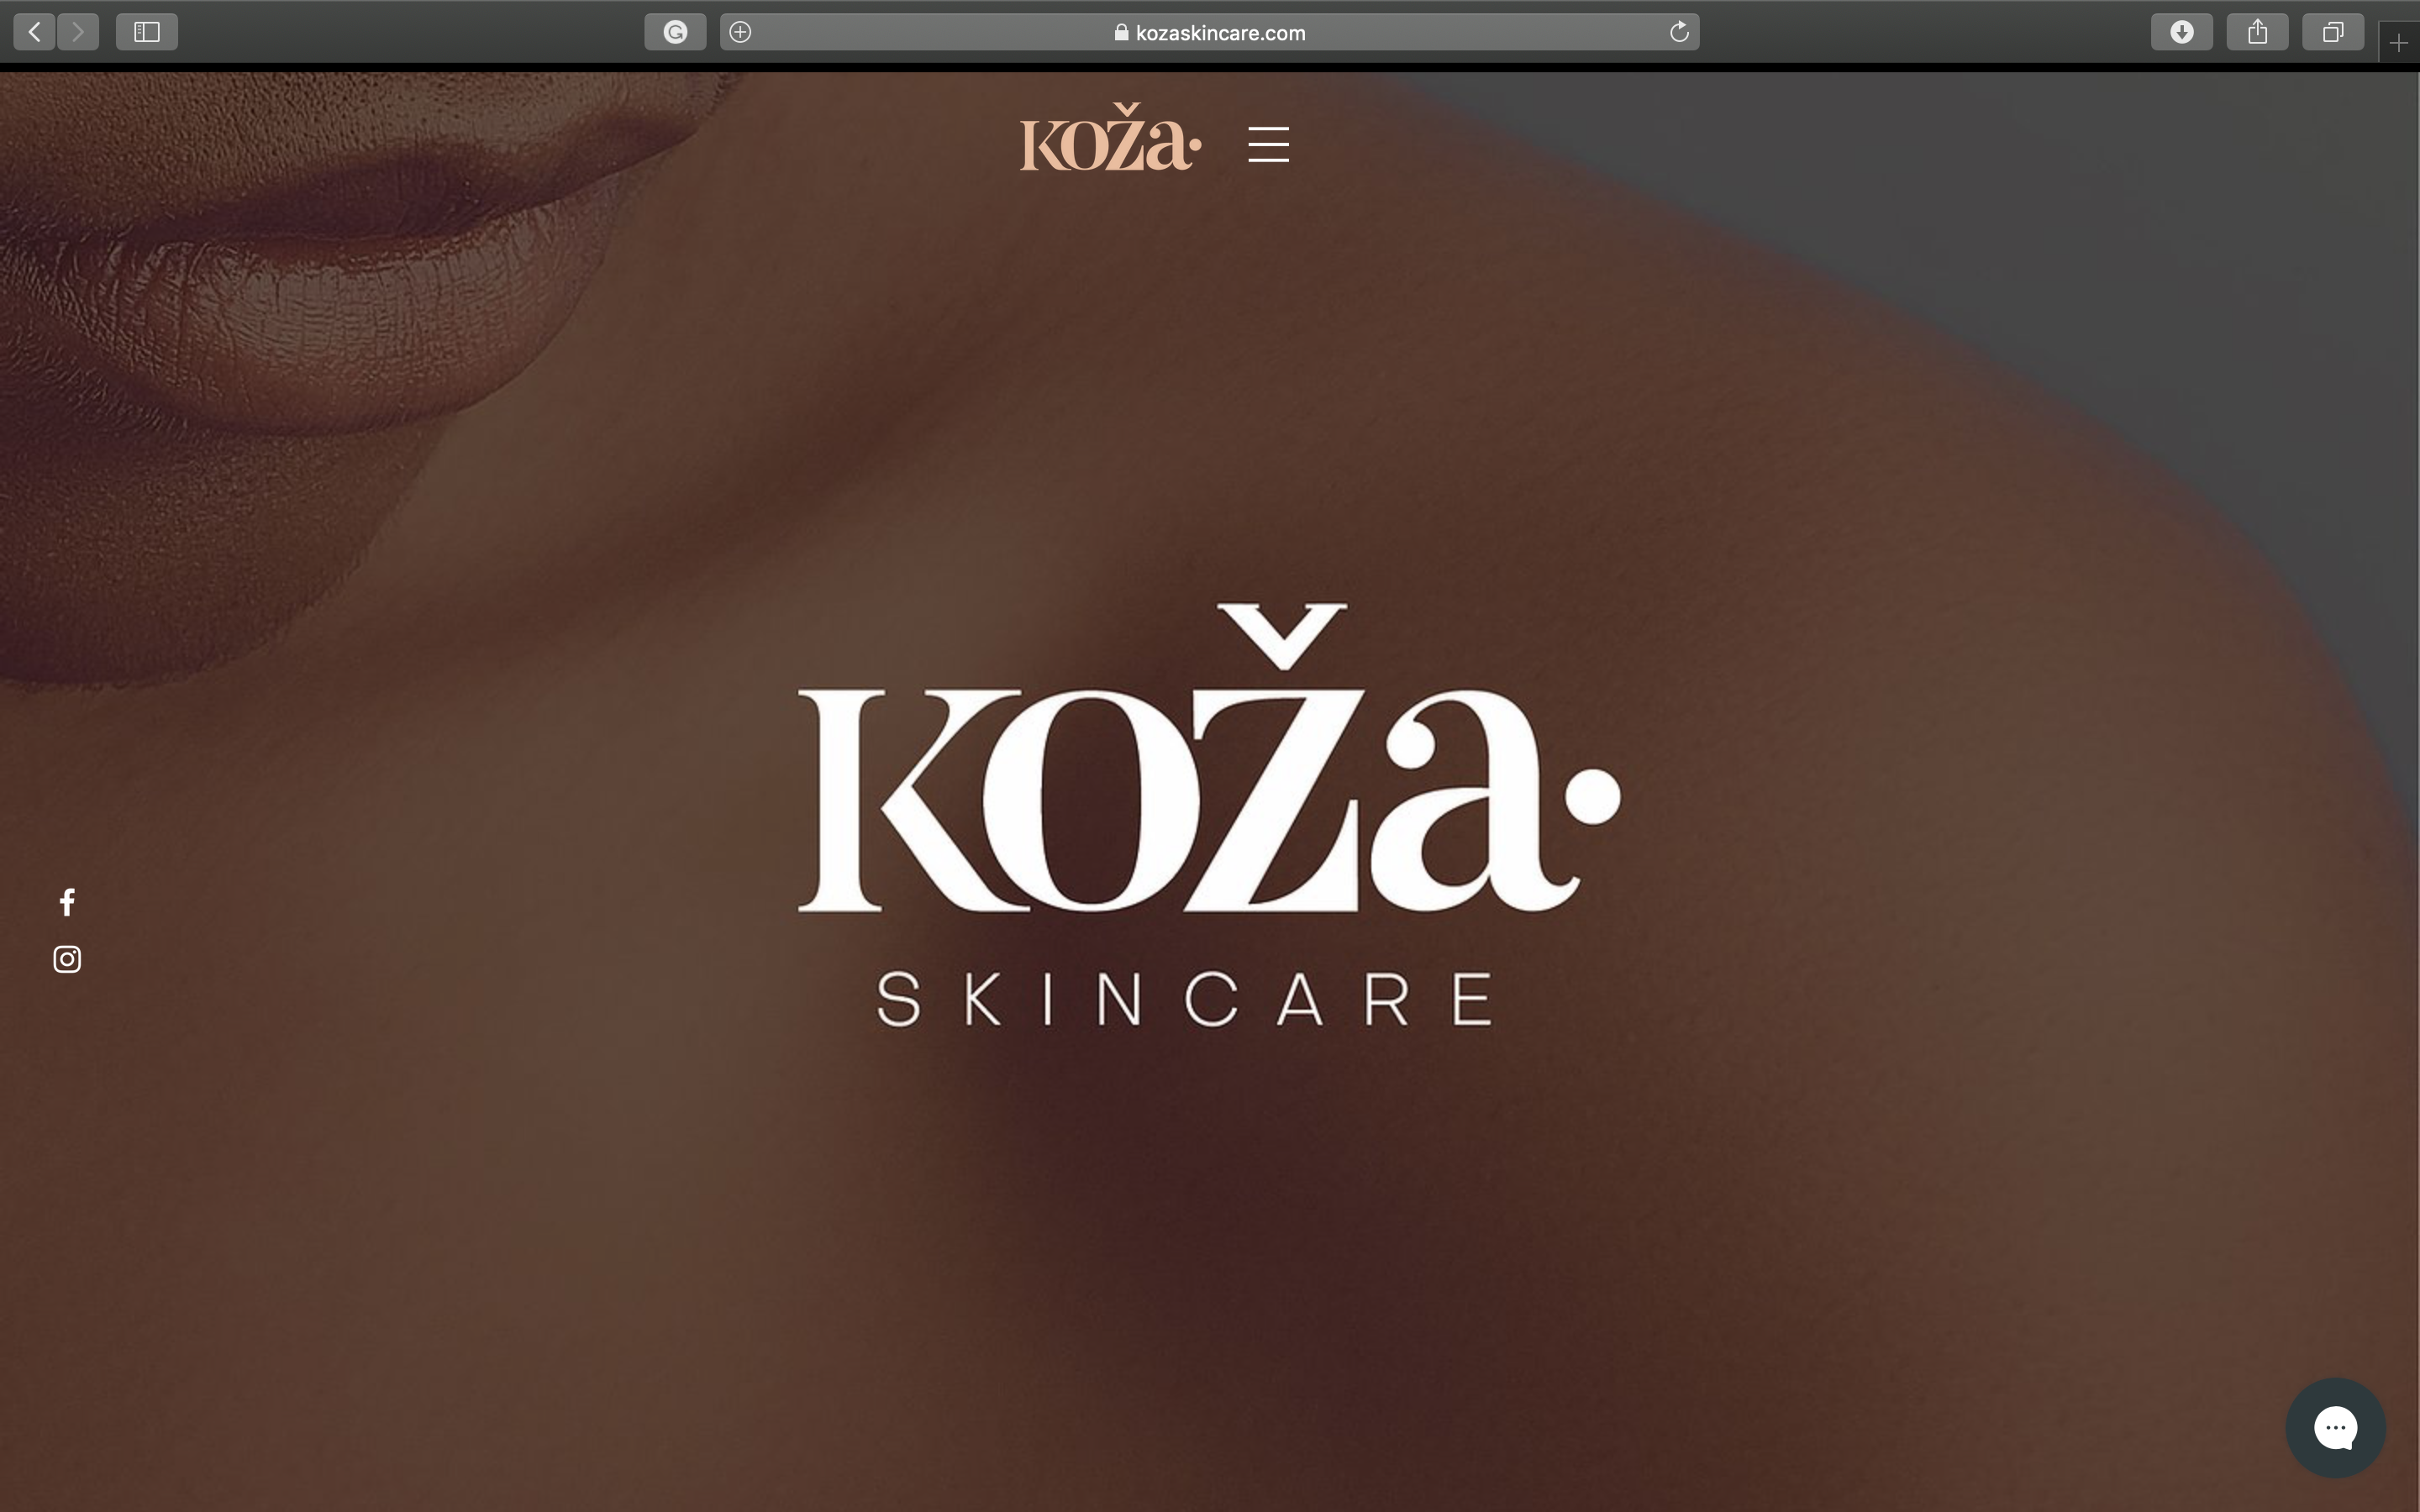 Website Design (Koza Skincare)